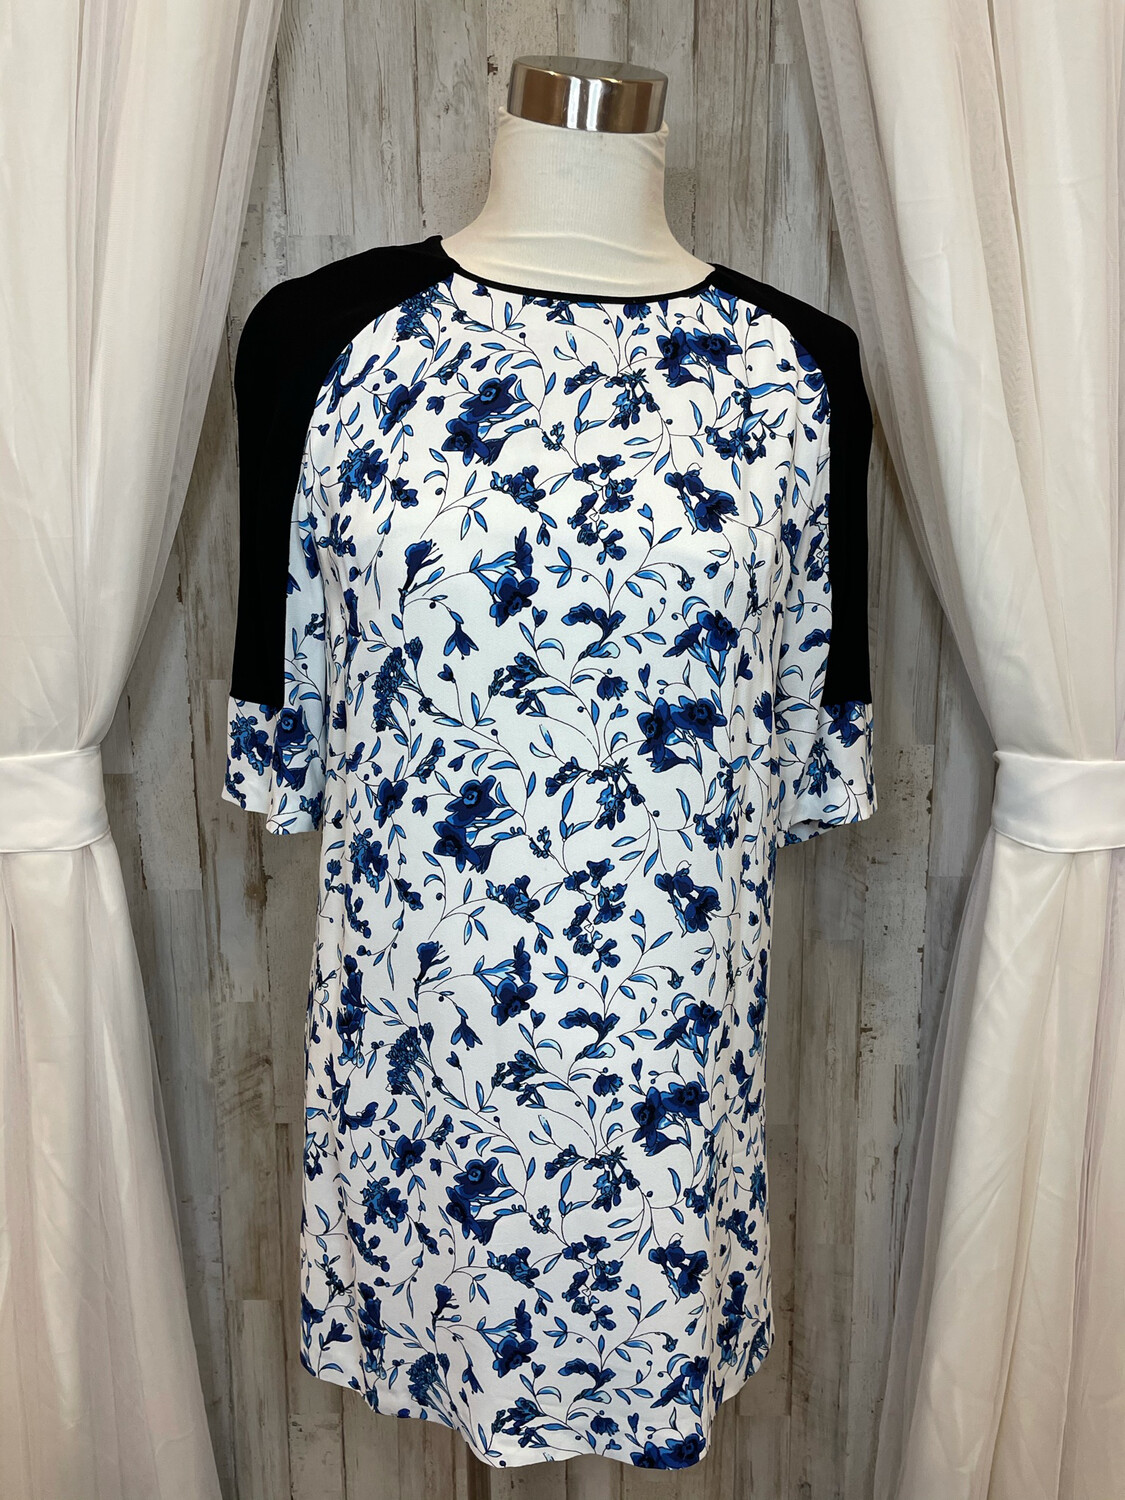 French Connection Blue Floral Dress with Sheer Accent - Size 4